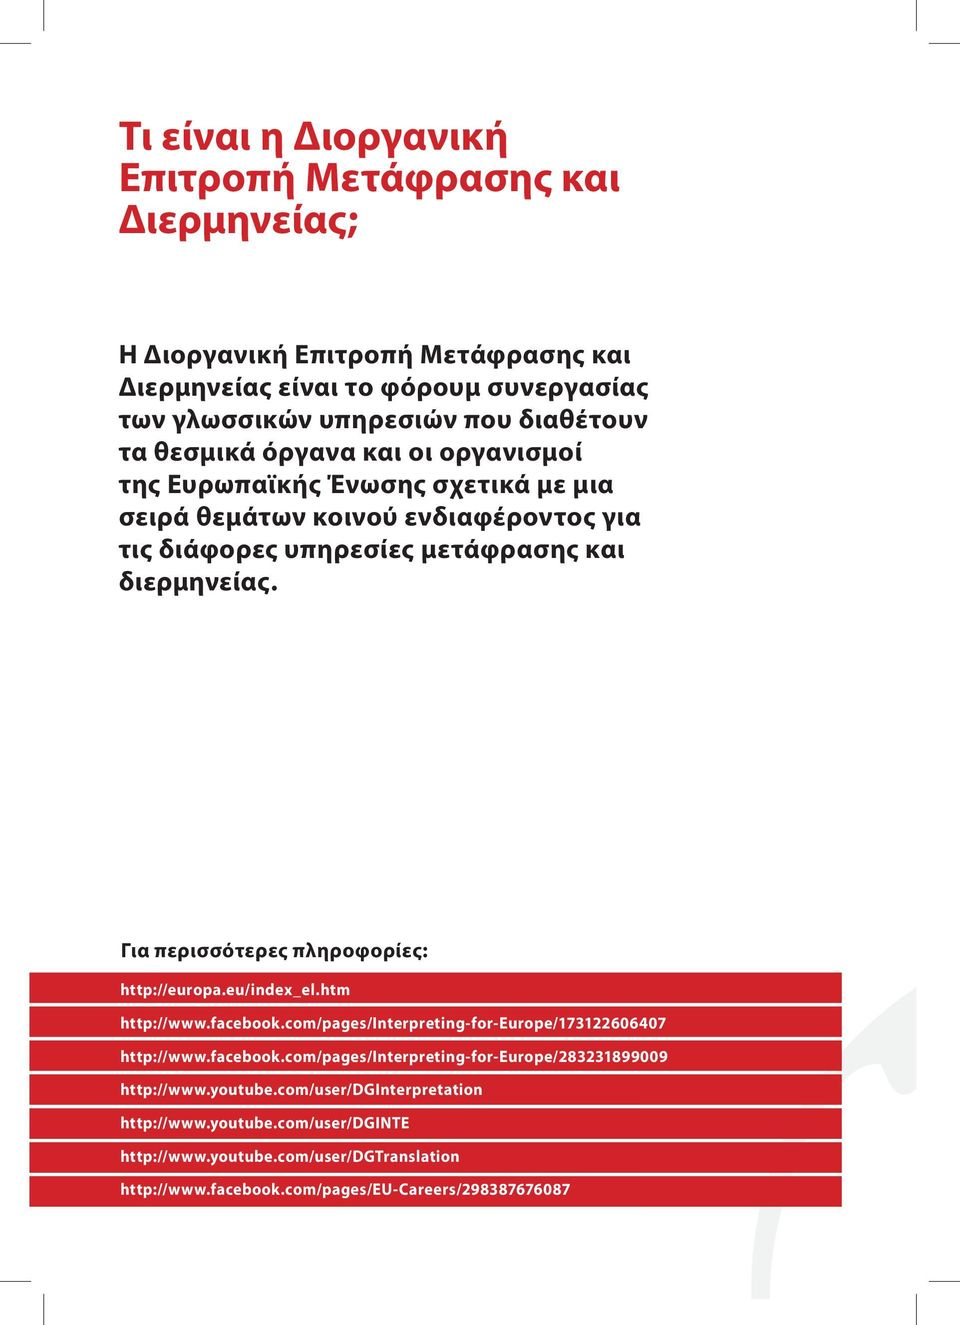 Για περισσότερες πληροφορίες: http://europa.eu/index_el.htm http://www.facebook.com/pages/interpreting-for-europe/173122606407 http://www.facebook.com/pages/interpreting-for-europe/283231899009 http://www.